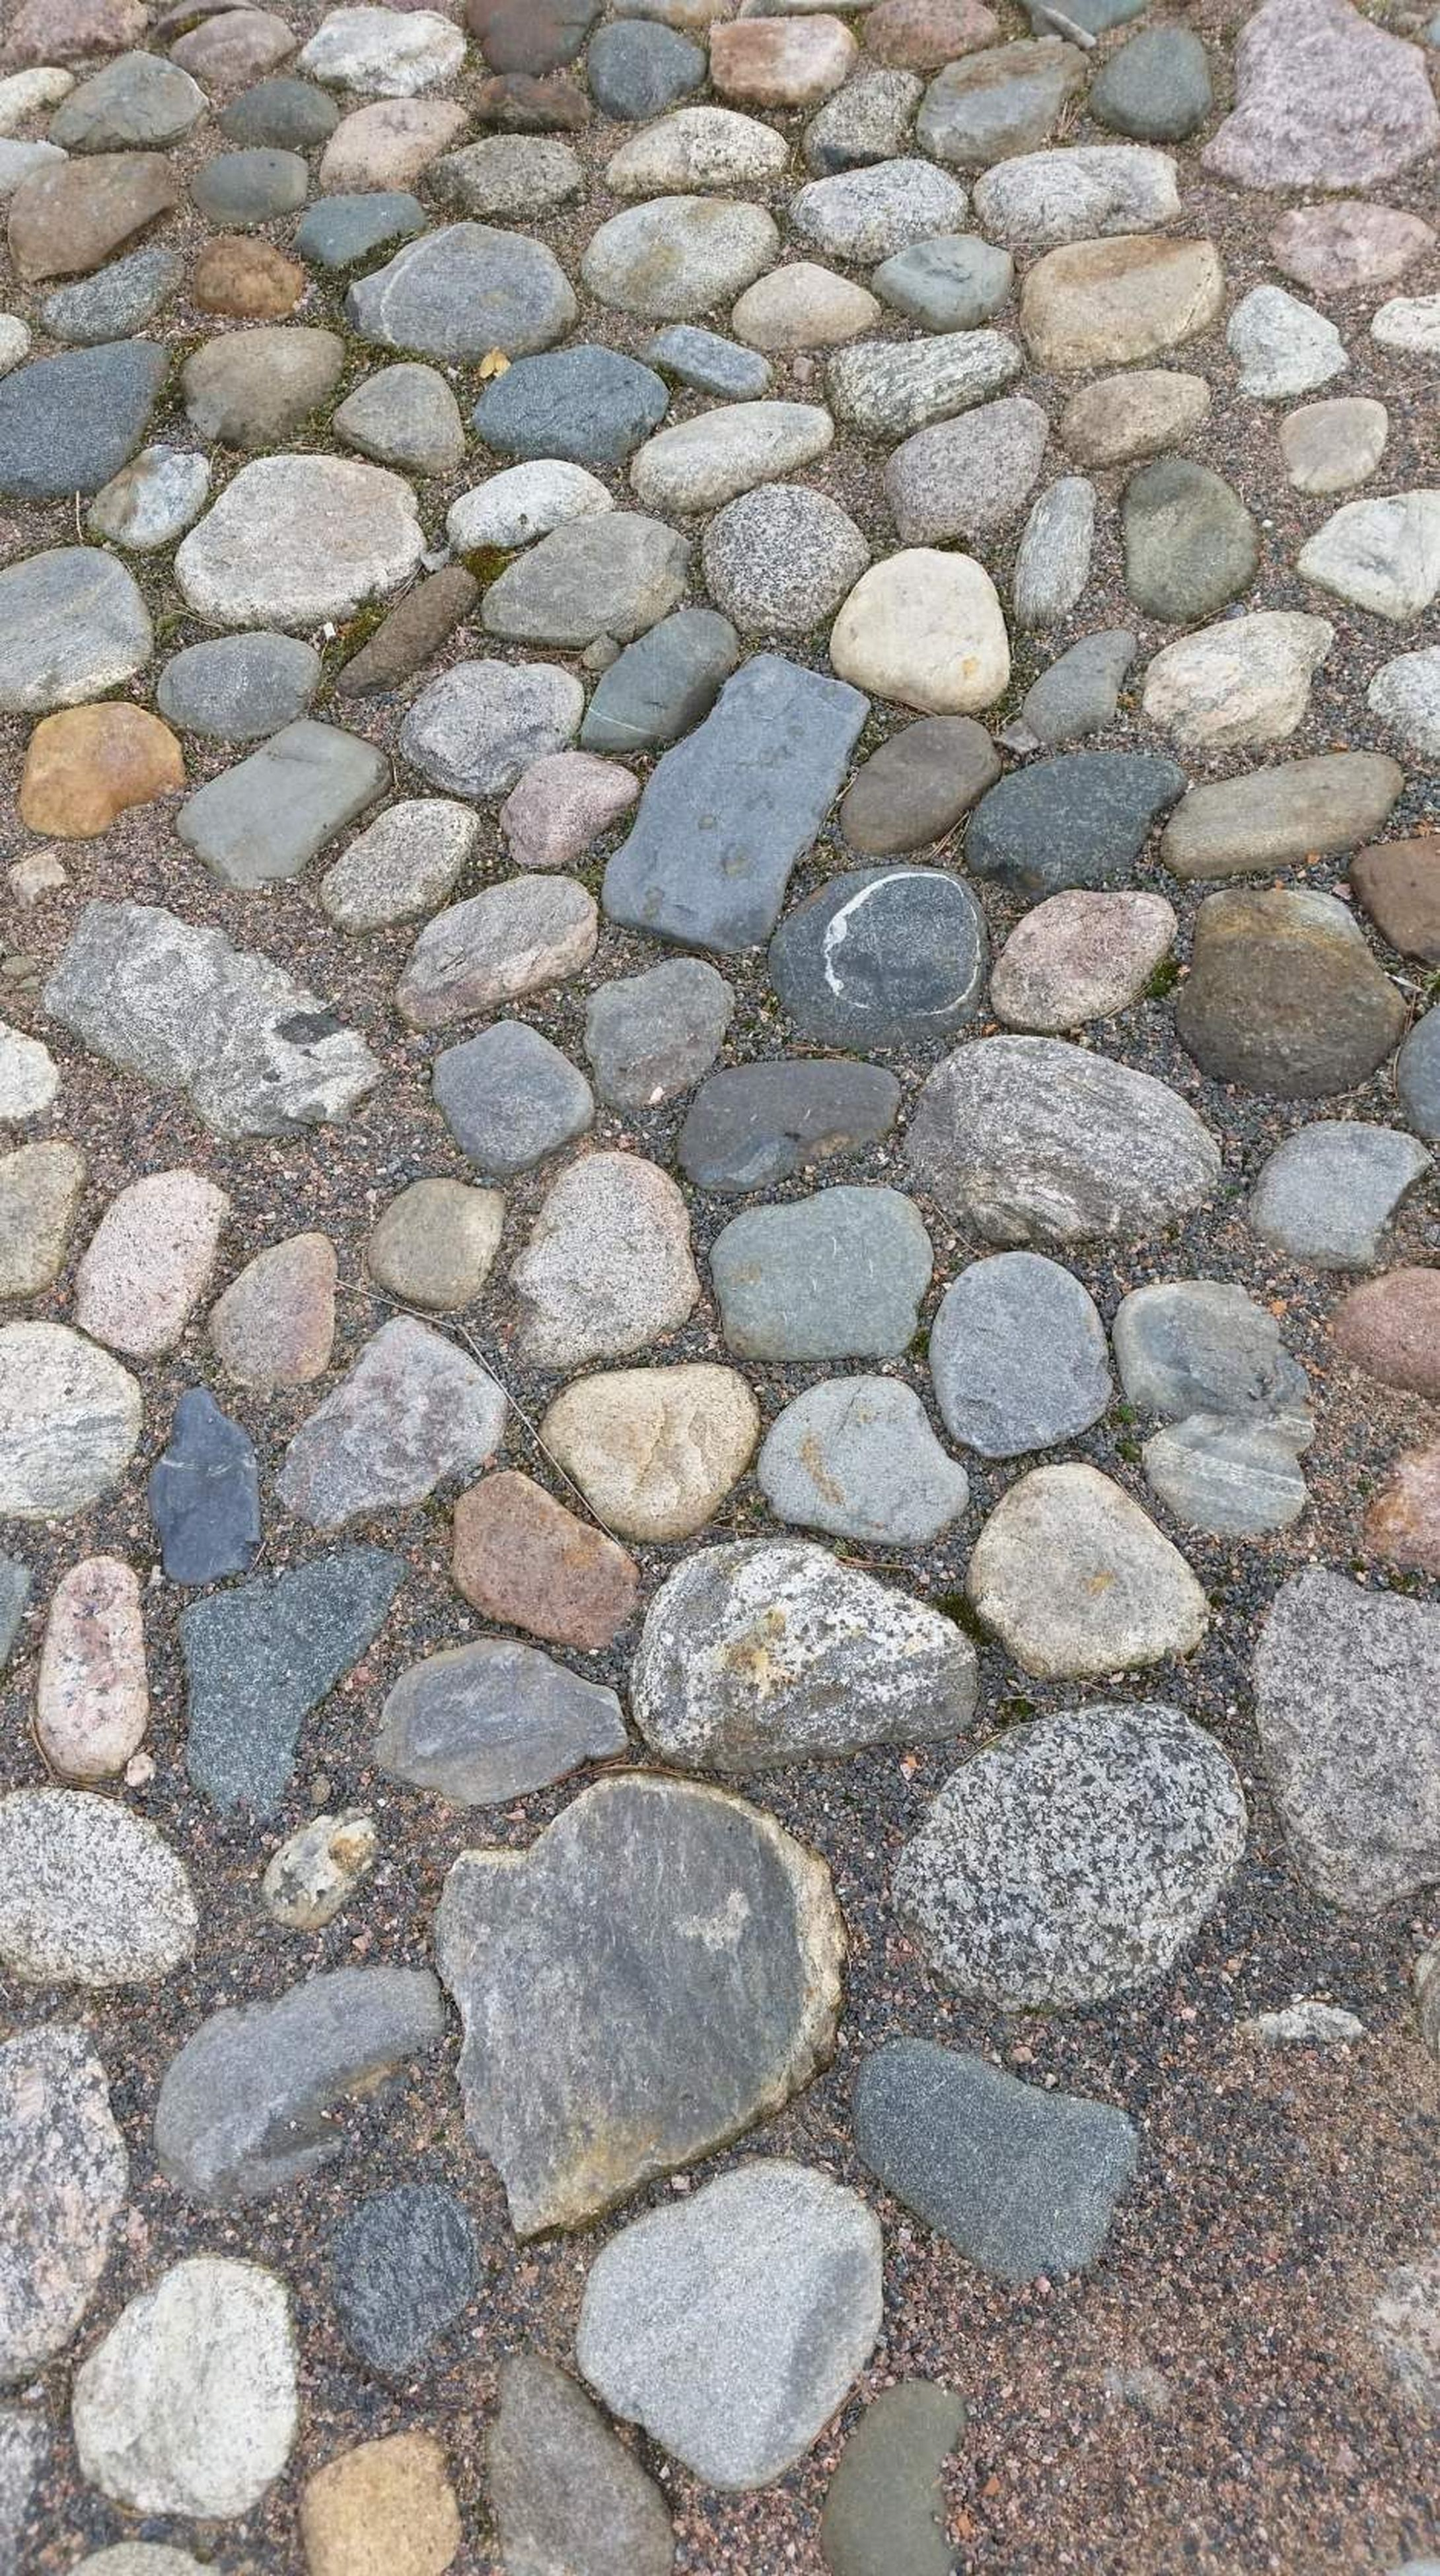 backgrounds, full frame, stone - object, textured, high angle view, stone material, day, paving stone, multi colored, footpath, outdoors, pebble, large group of objects, no people, extreme close up